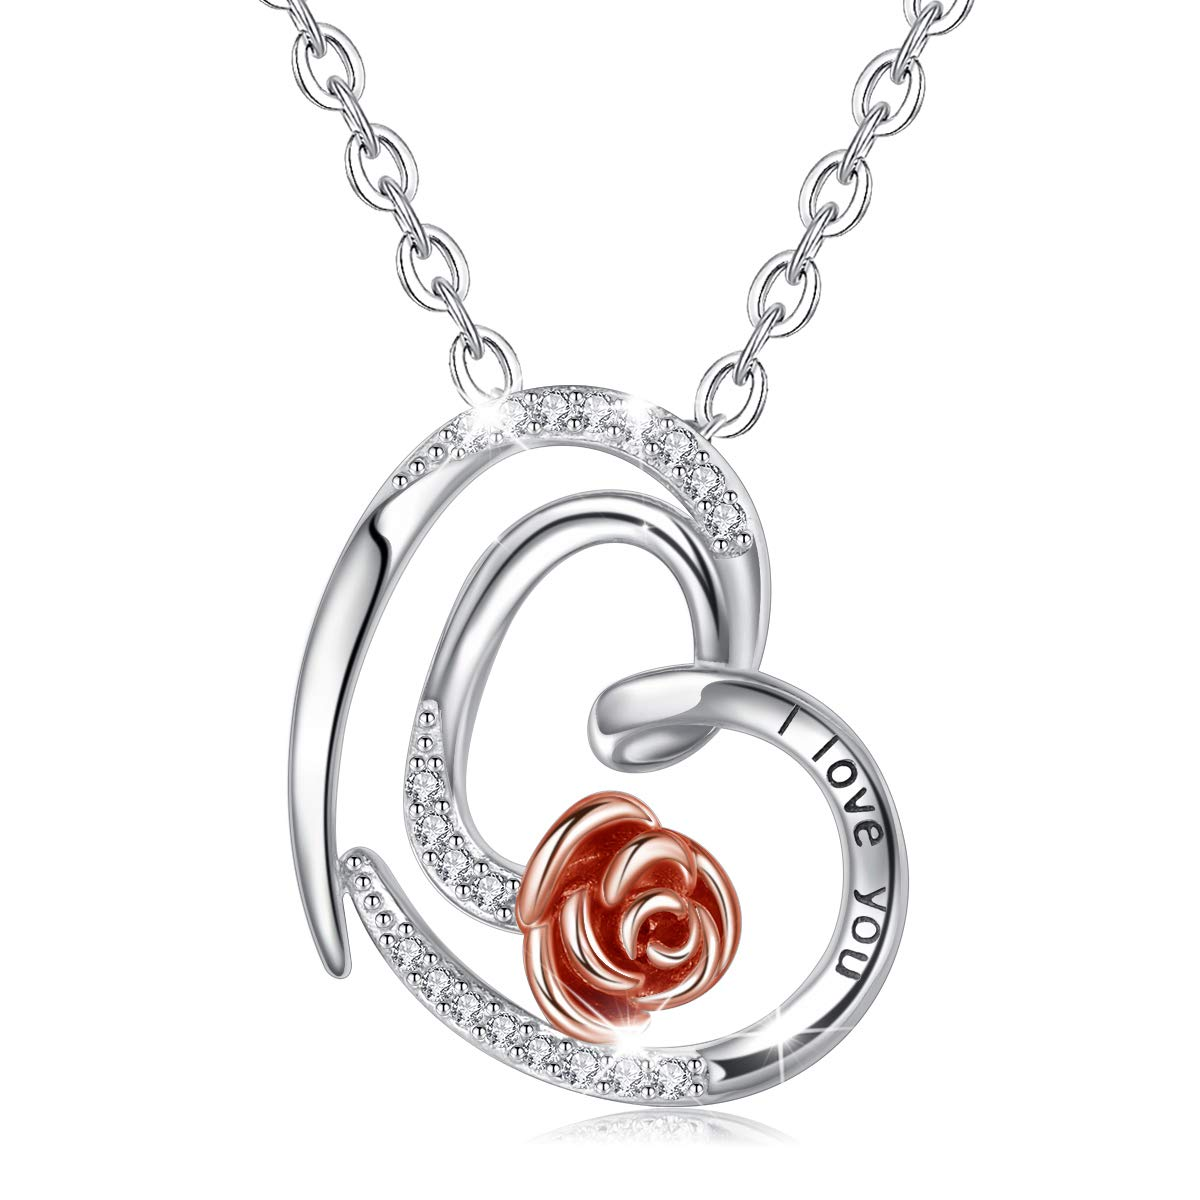 """CELESTIA Sterling Silver Heart Rose Necklace for Women, I Love You Forever Love Heart Flower Pendant Necklaces Mothers Day Gifts - 18"""" Chain"""